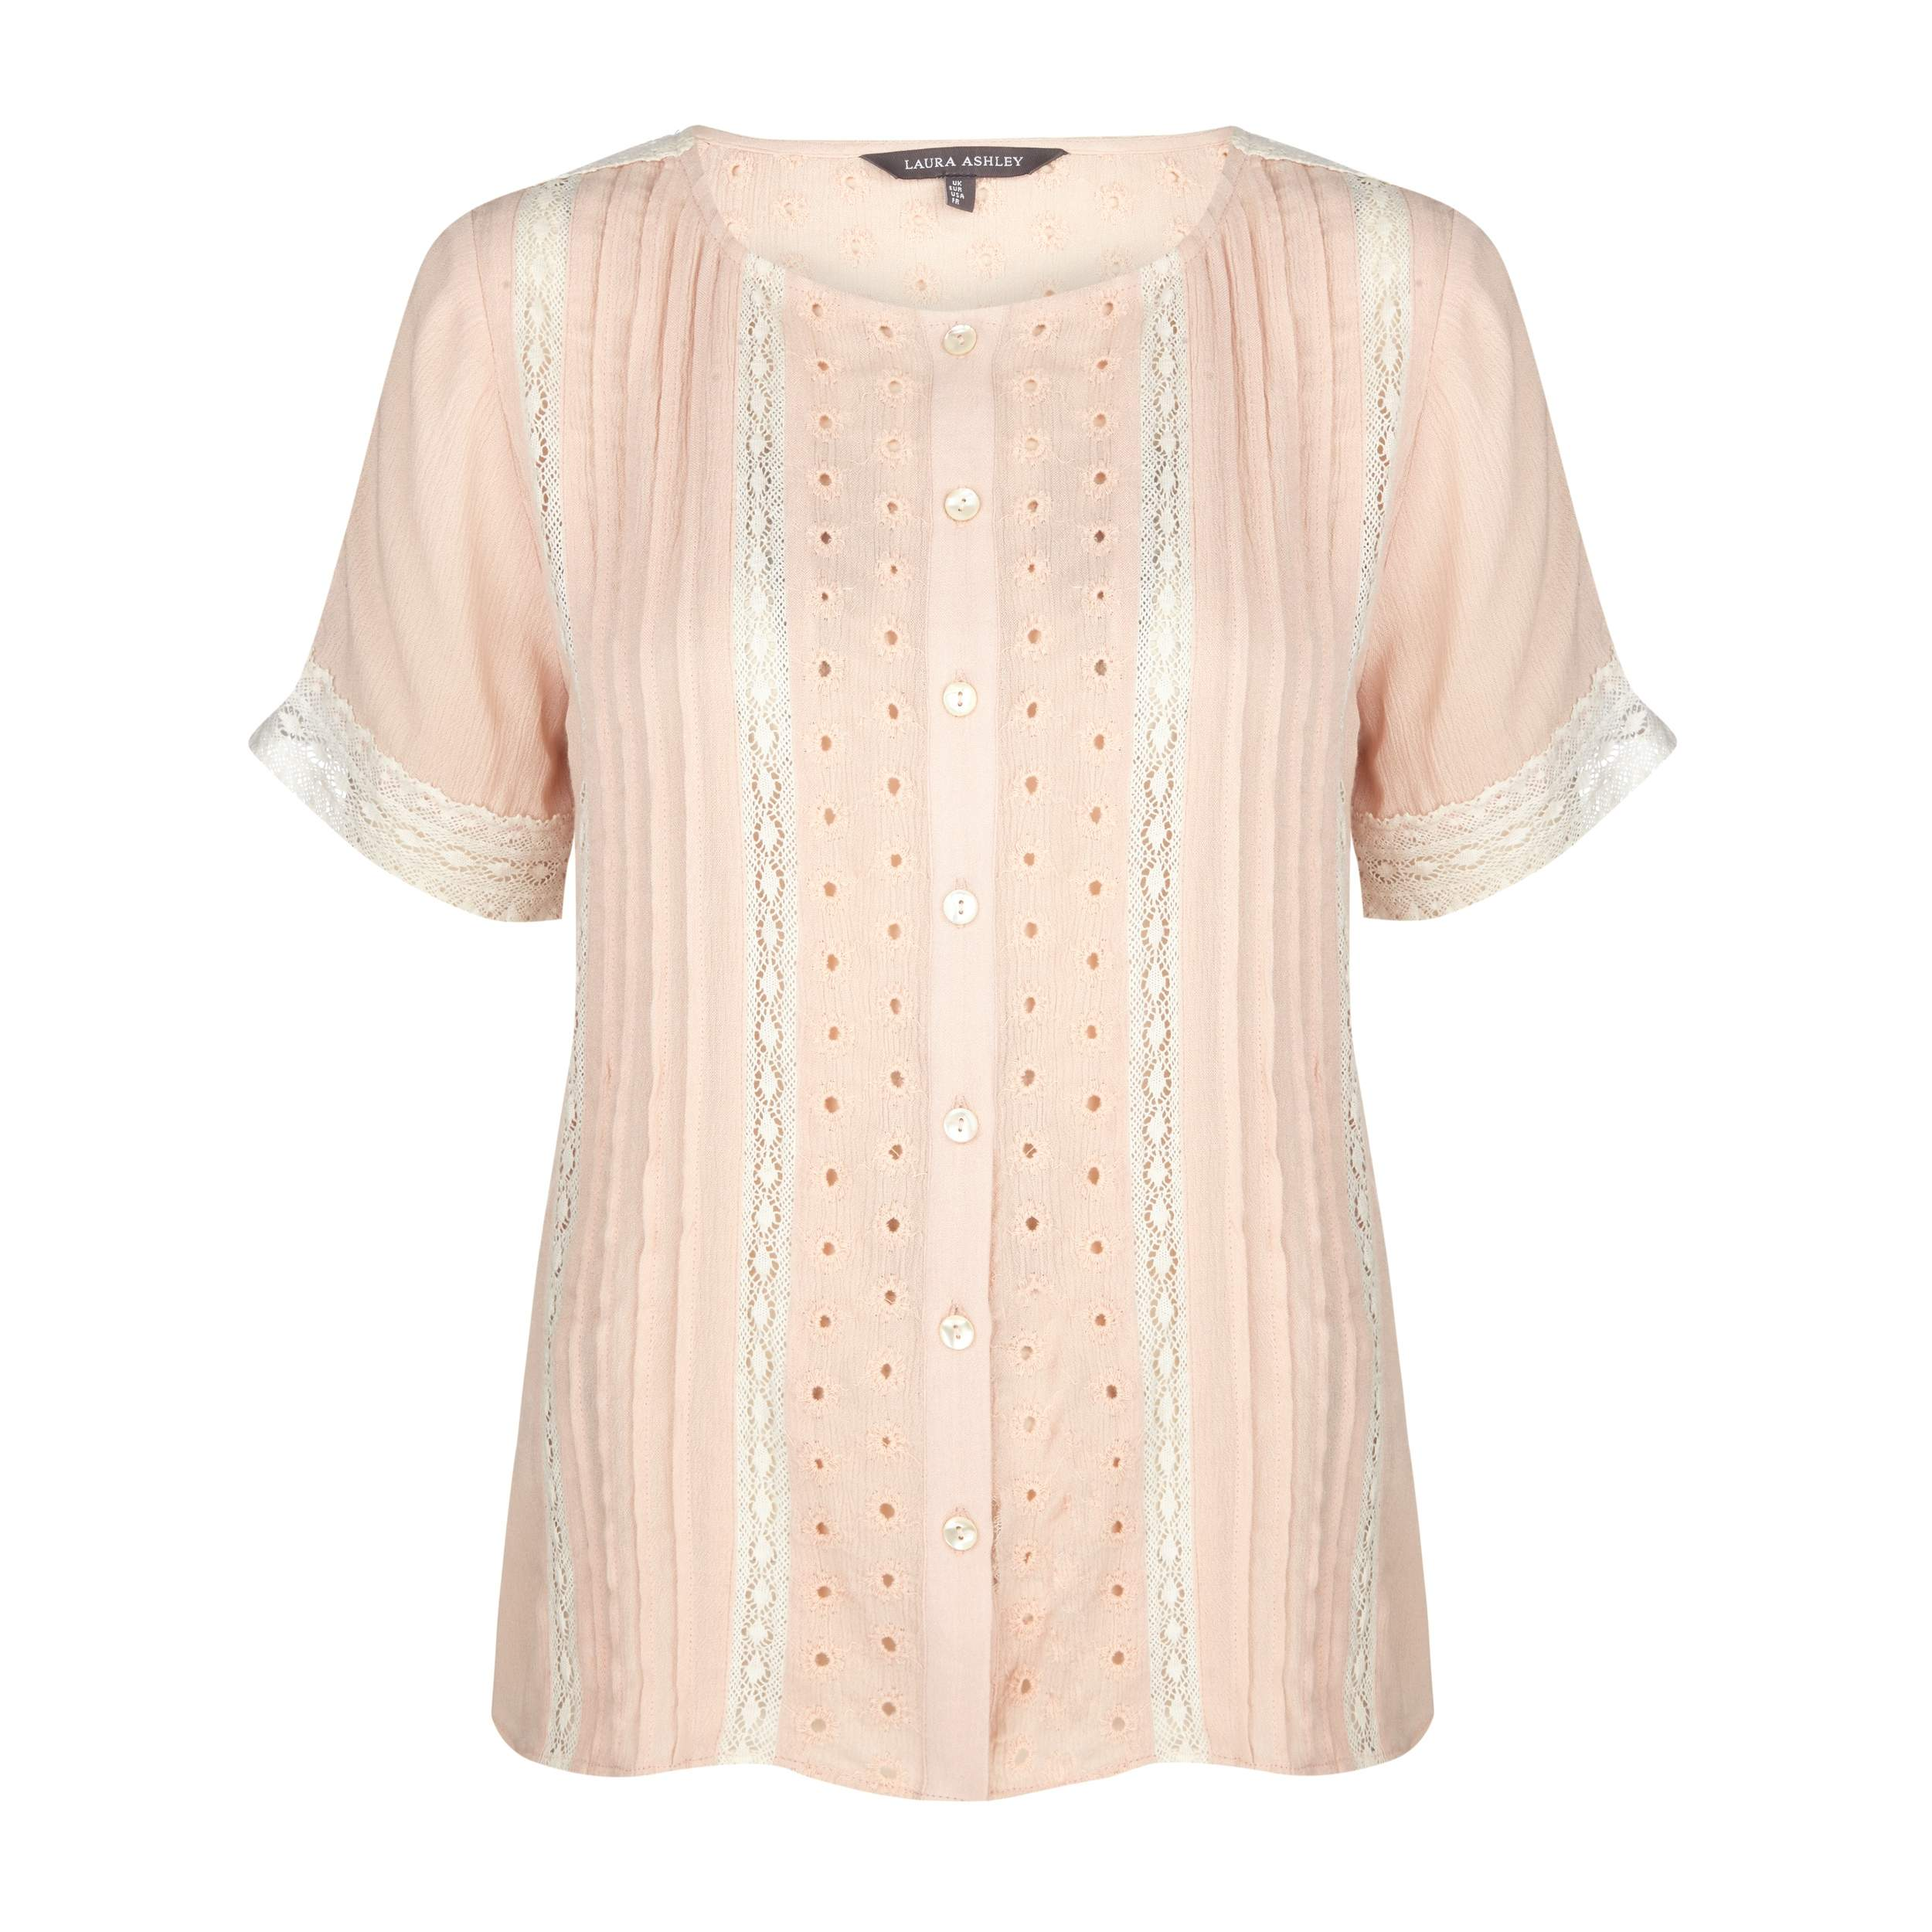 laura ashley womens pink lace and broderie button up blouse bl322 uk 14 eu 40 ebay. Black Bedroom Furniture Sets. Home Design Ideas